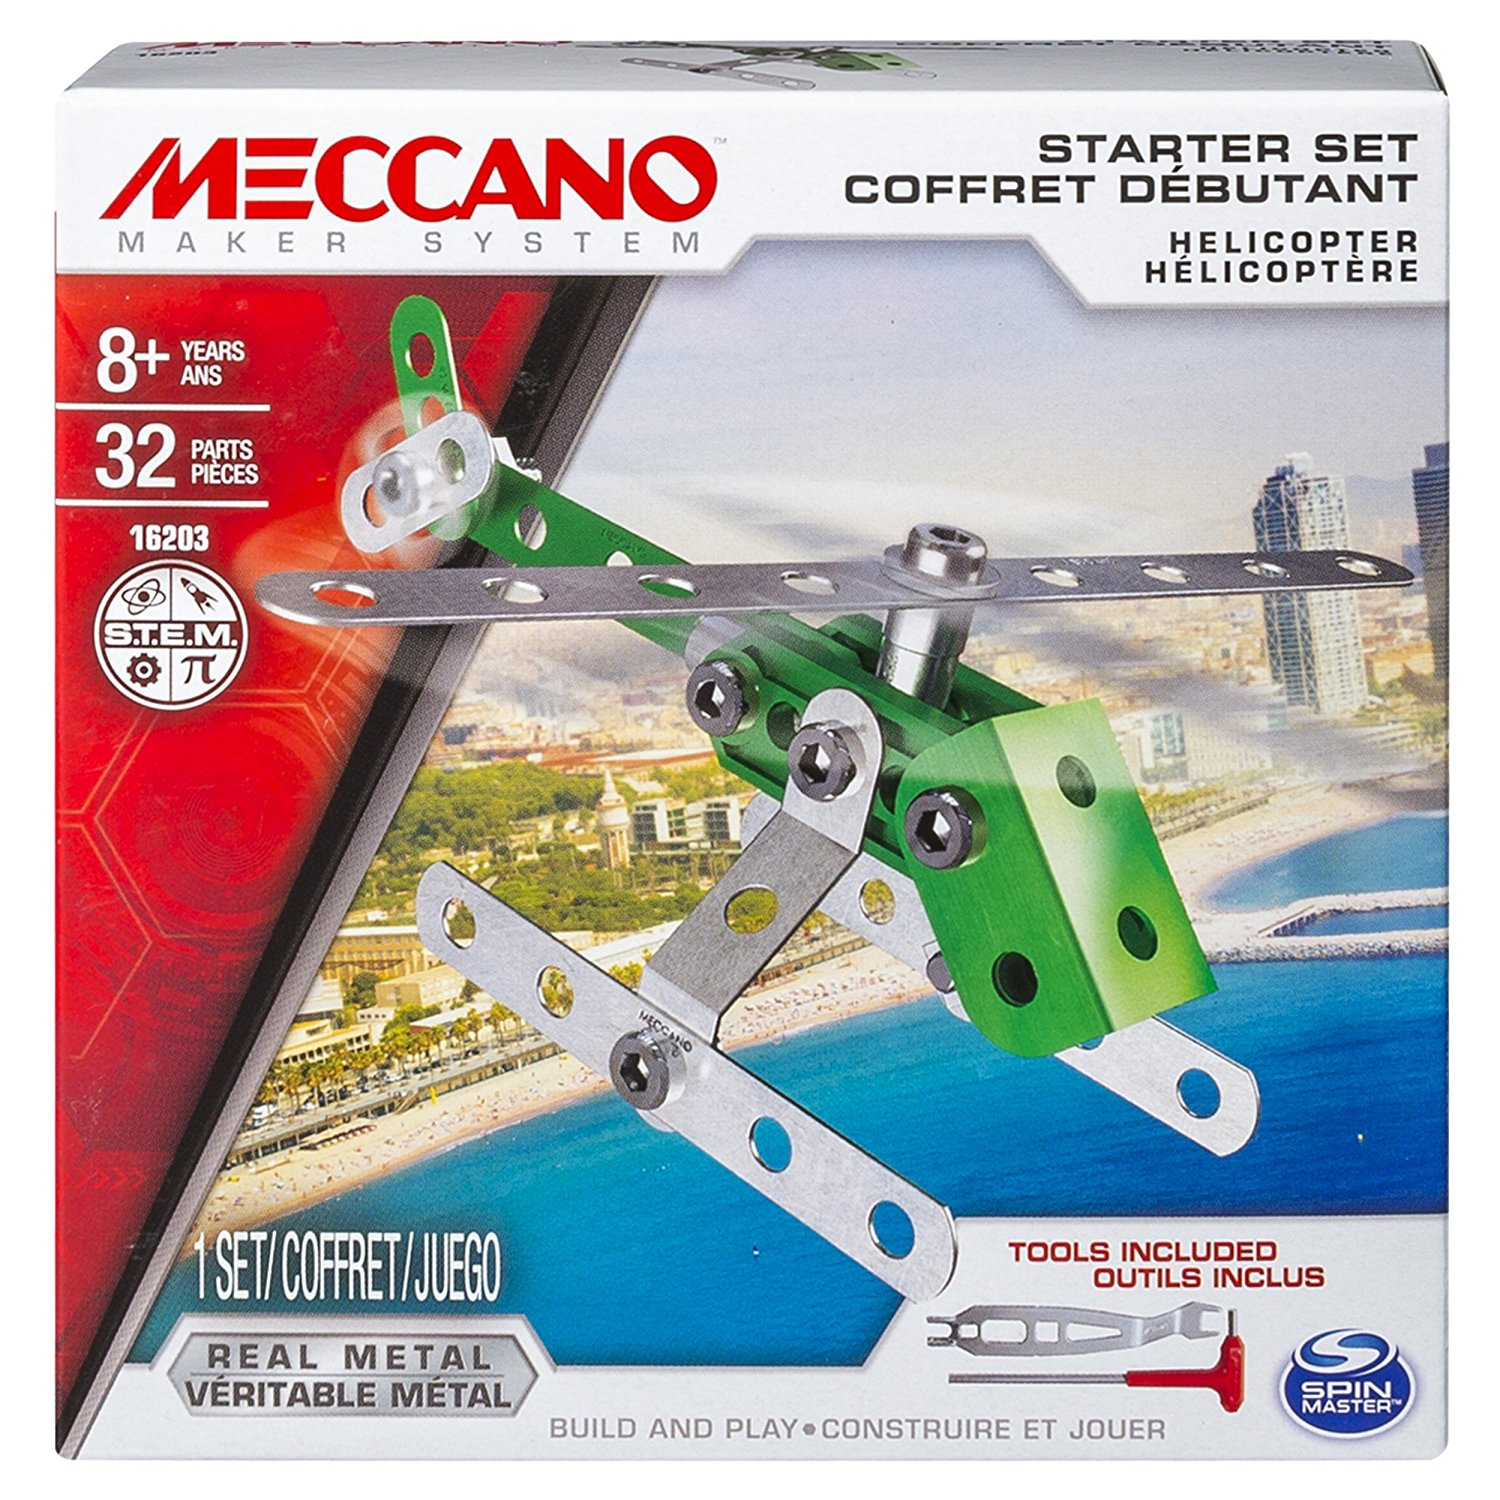 Mecanno, Starter Set, Helicopter, Model: 16203 By Meccano